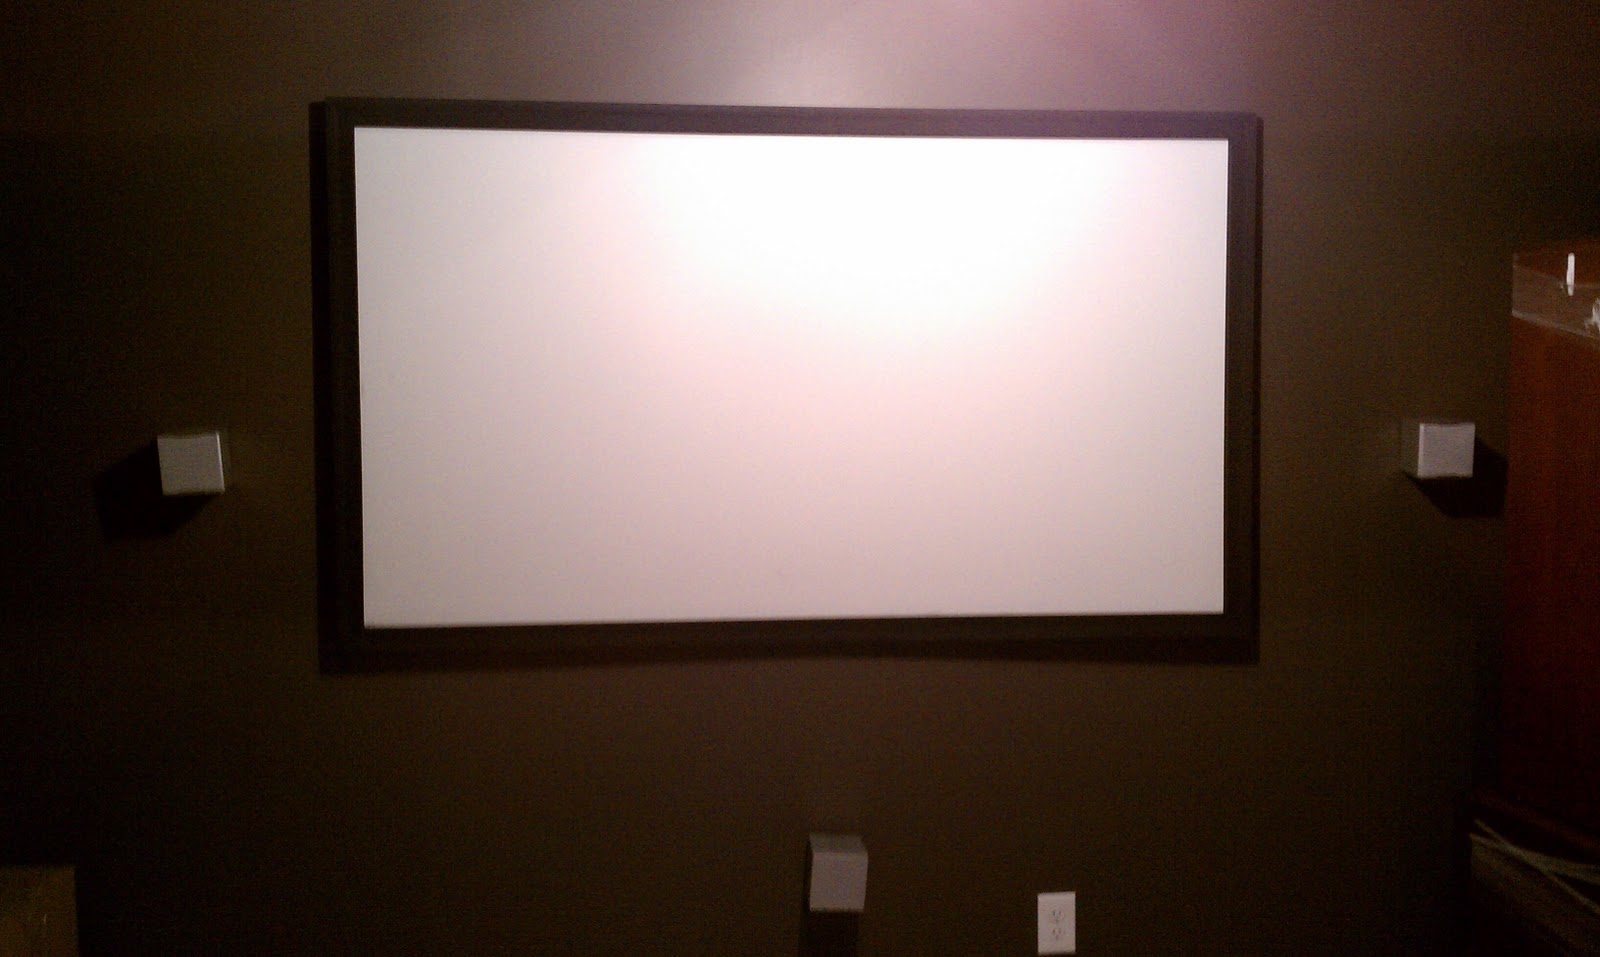 Home Theater Projector Screen After The Paint